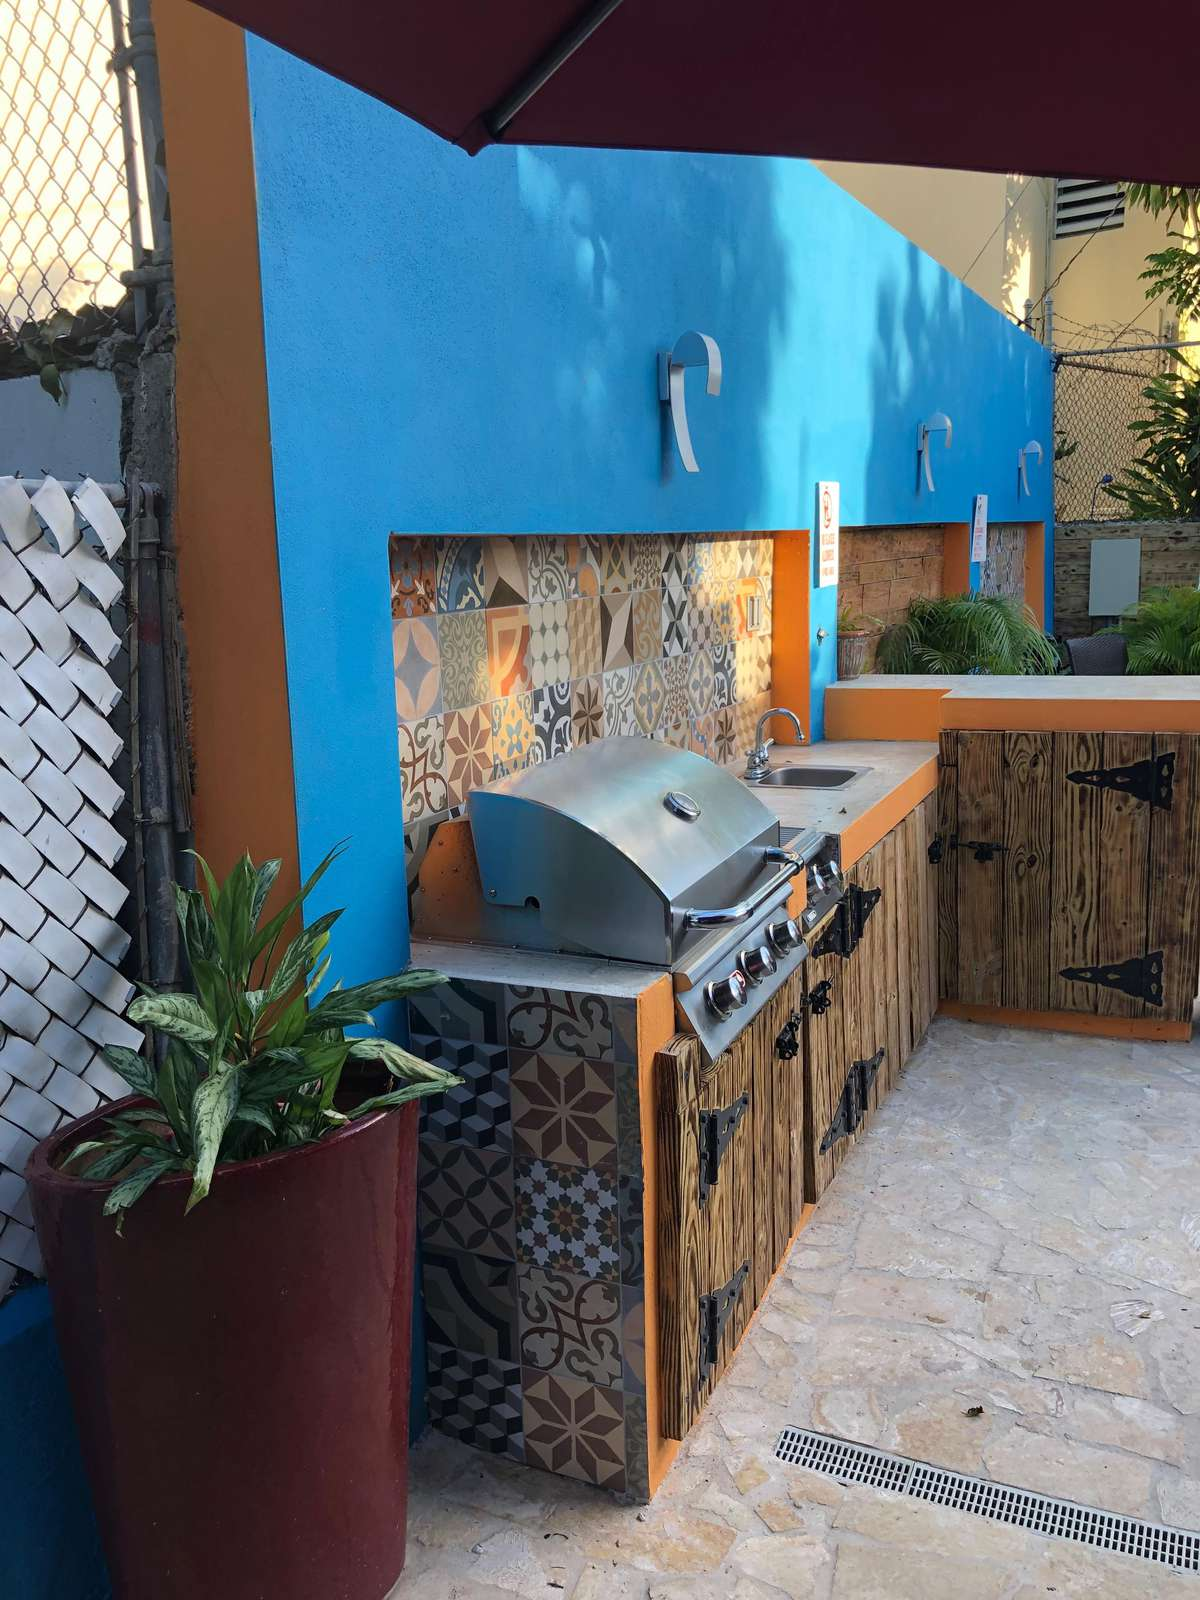 BULL barbecue grill makes grilling a joy